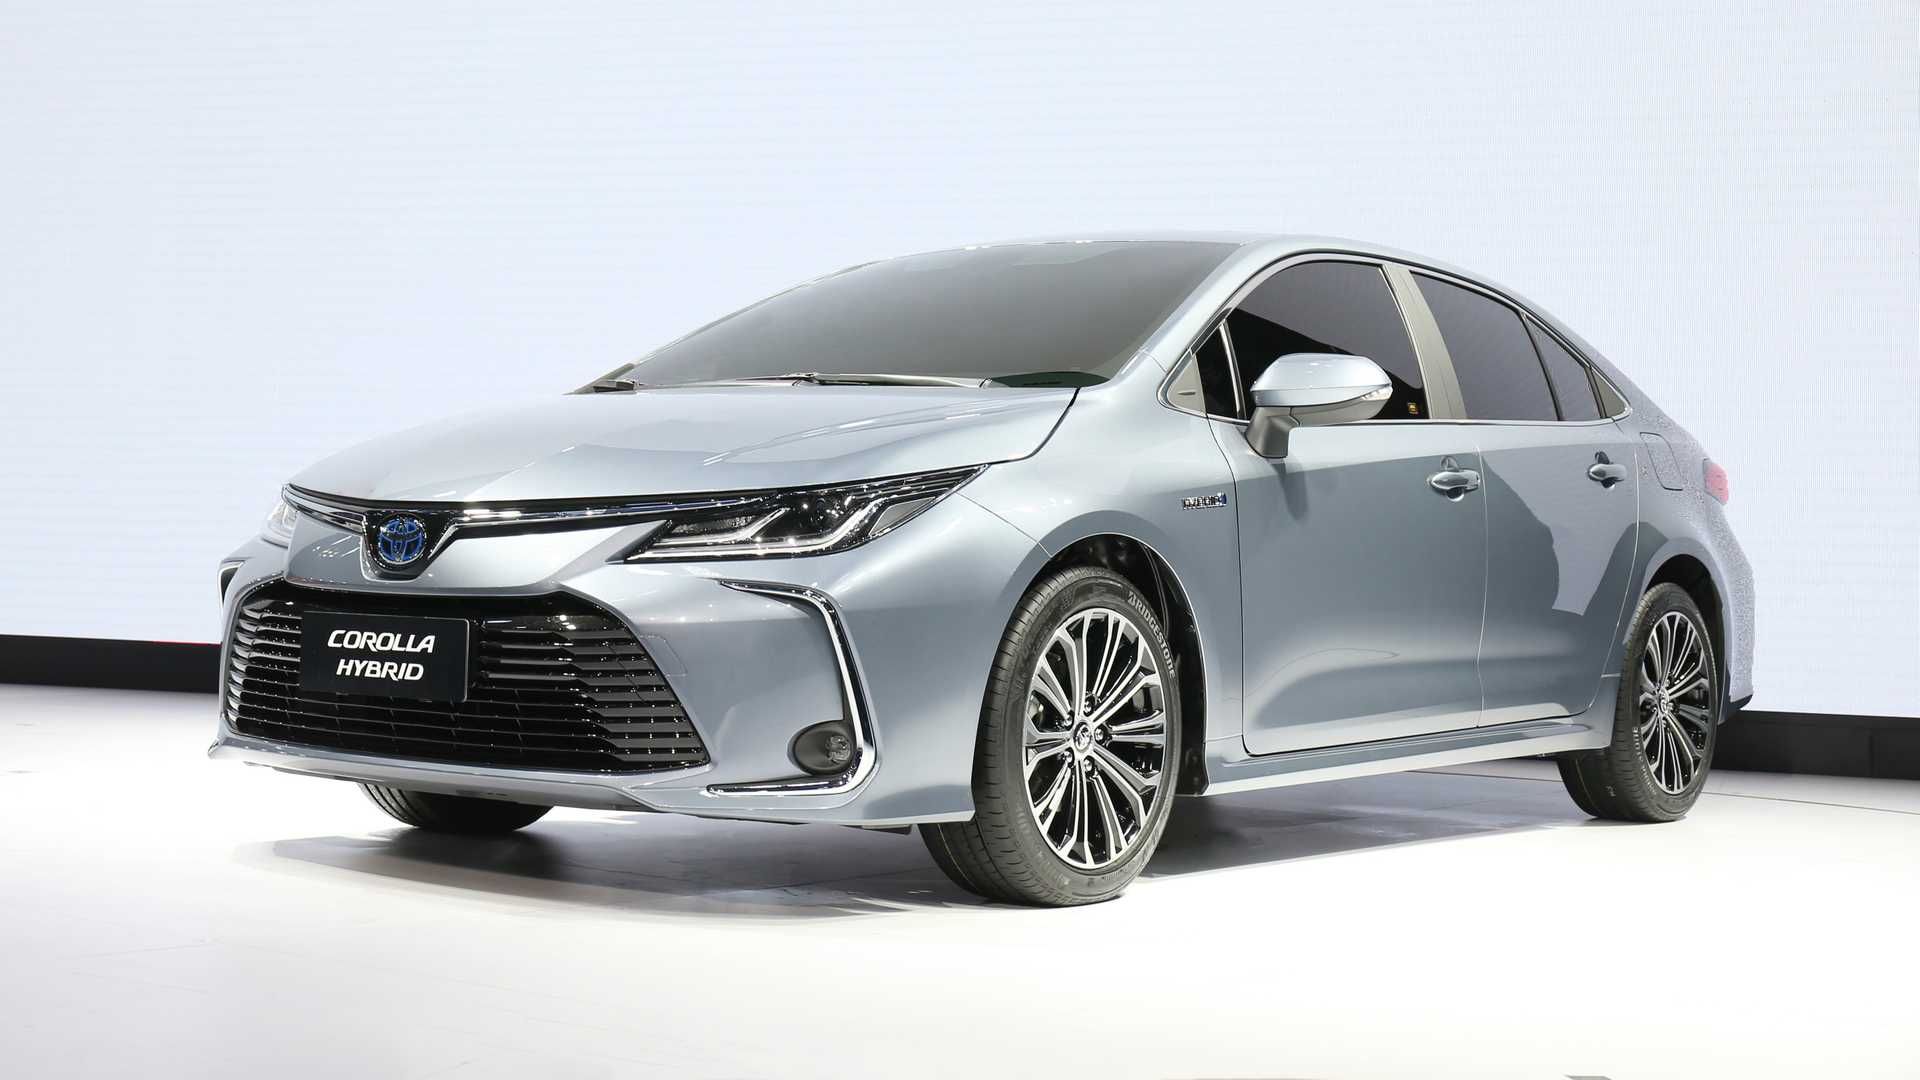 28 All New 2020 Toyota Avensis 2020 Rumors for 2020 Toyota Avensis 2020